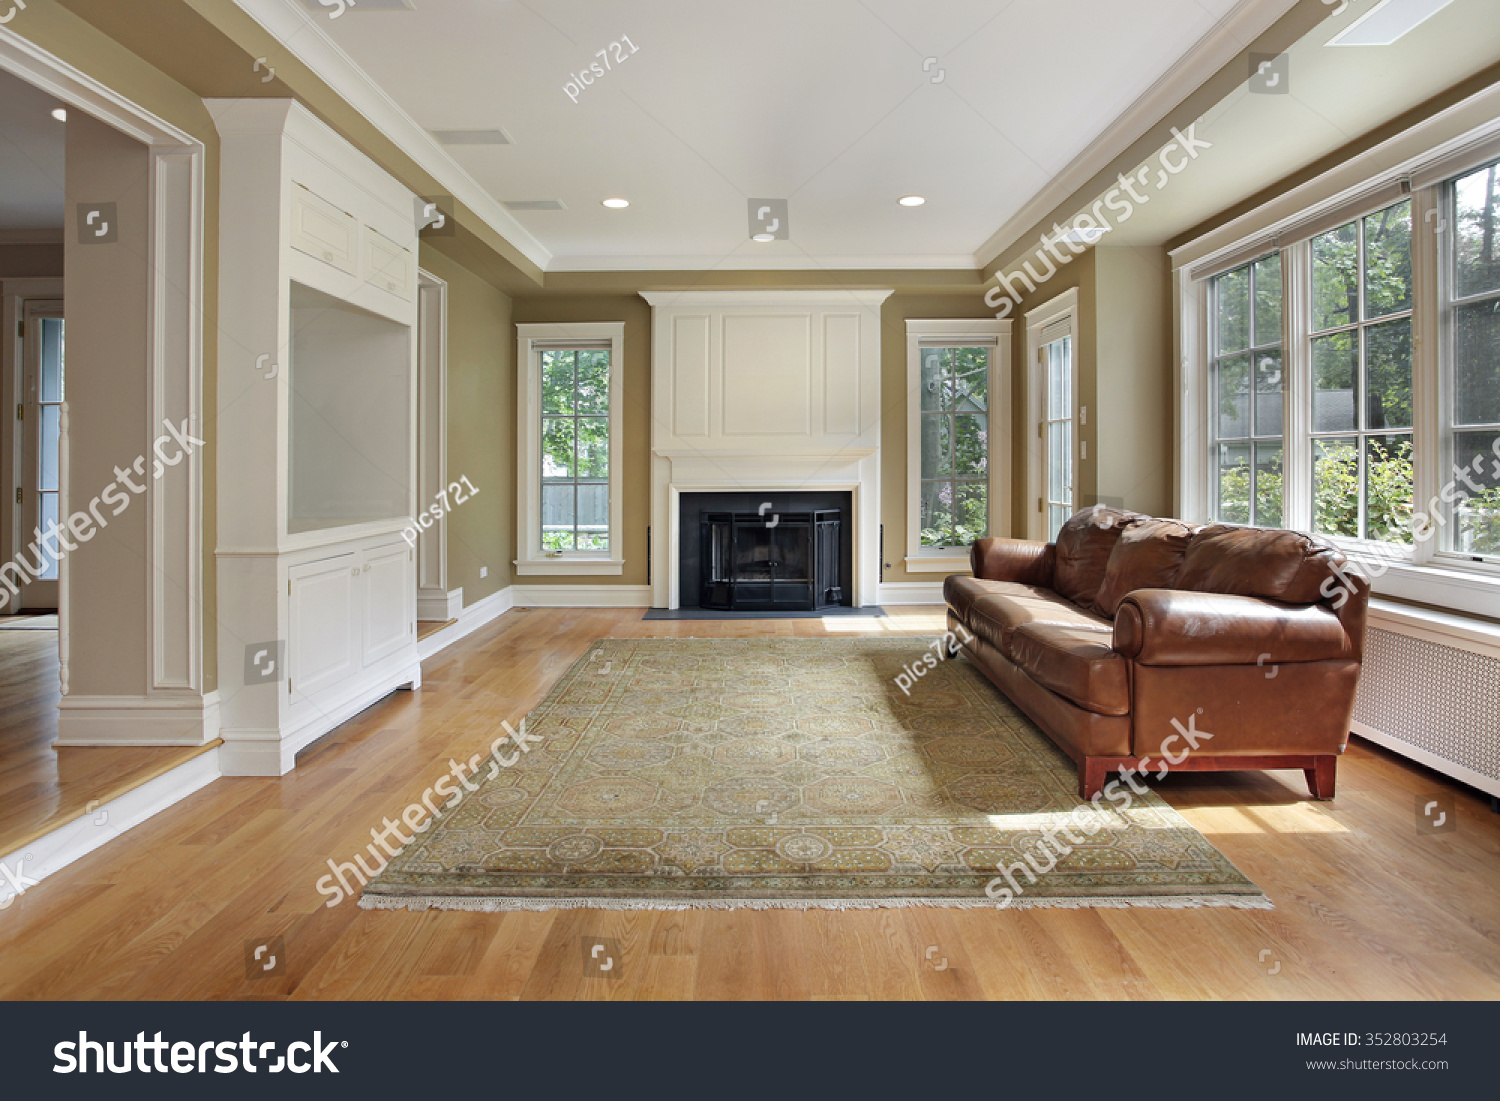 Family Room In Luxury Home With Fireplace Stock Photo